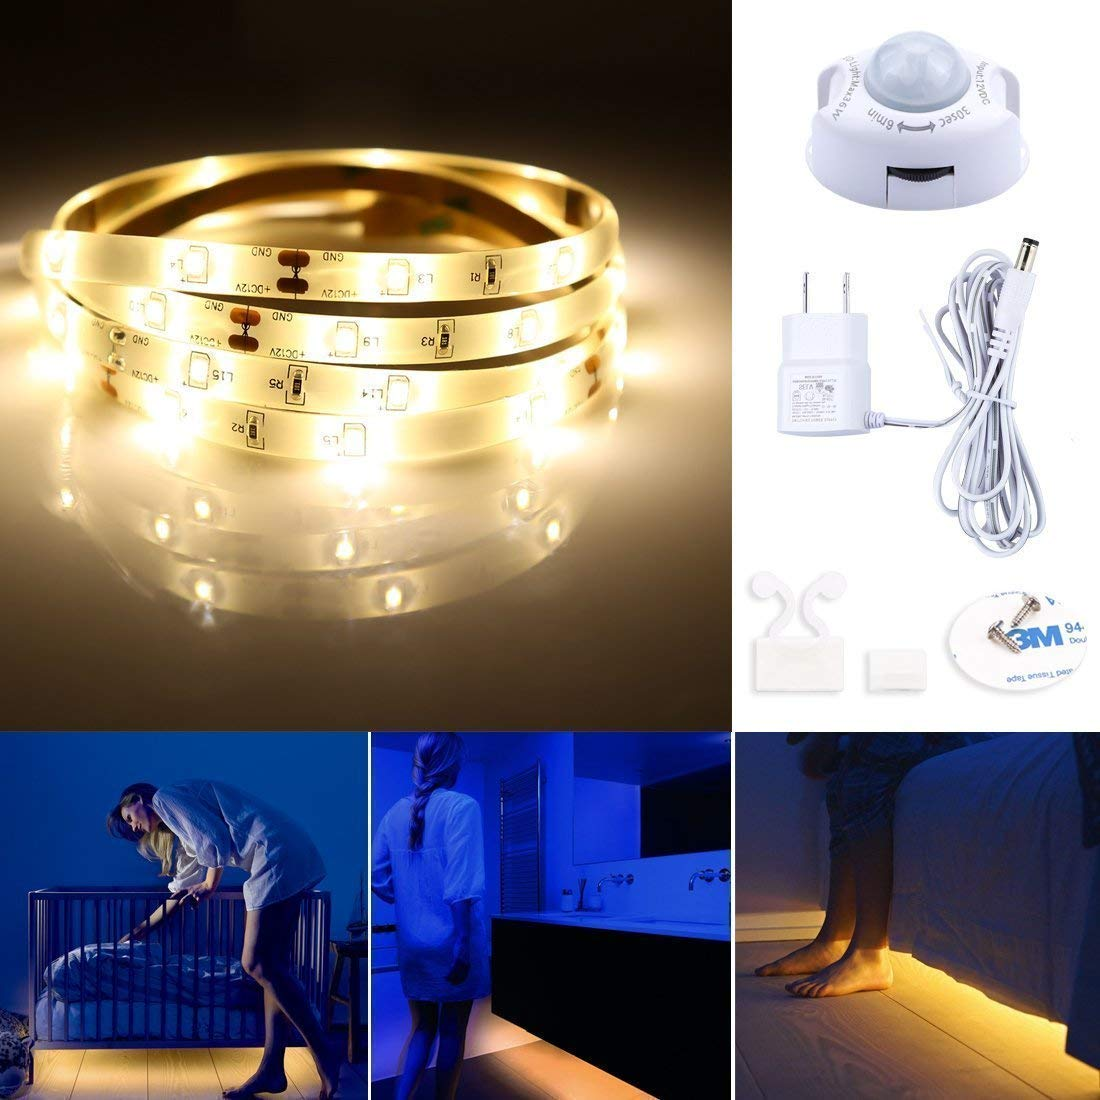 Motion Activated Under Bed Light,LED Motion Sensor Bedside Light Strip 1.2M,Warm White 3000K,Waterproof LED Bed Light For Under Cabinet, Under Bed, Hallway, Dark Corner Accent Lighting(1 Pack)